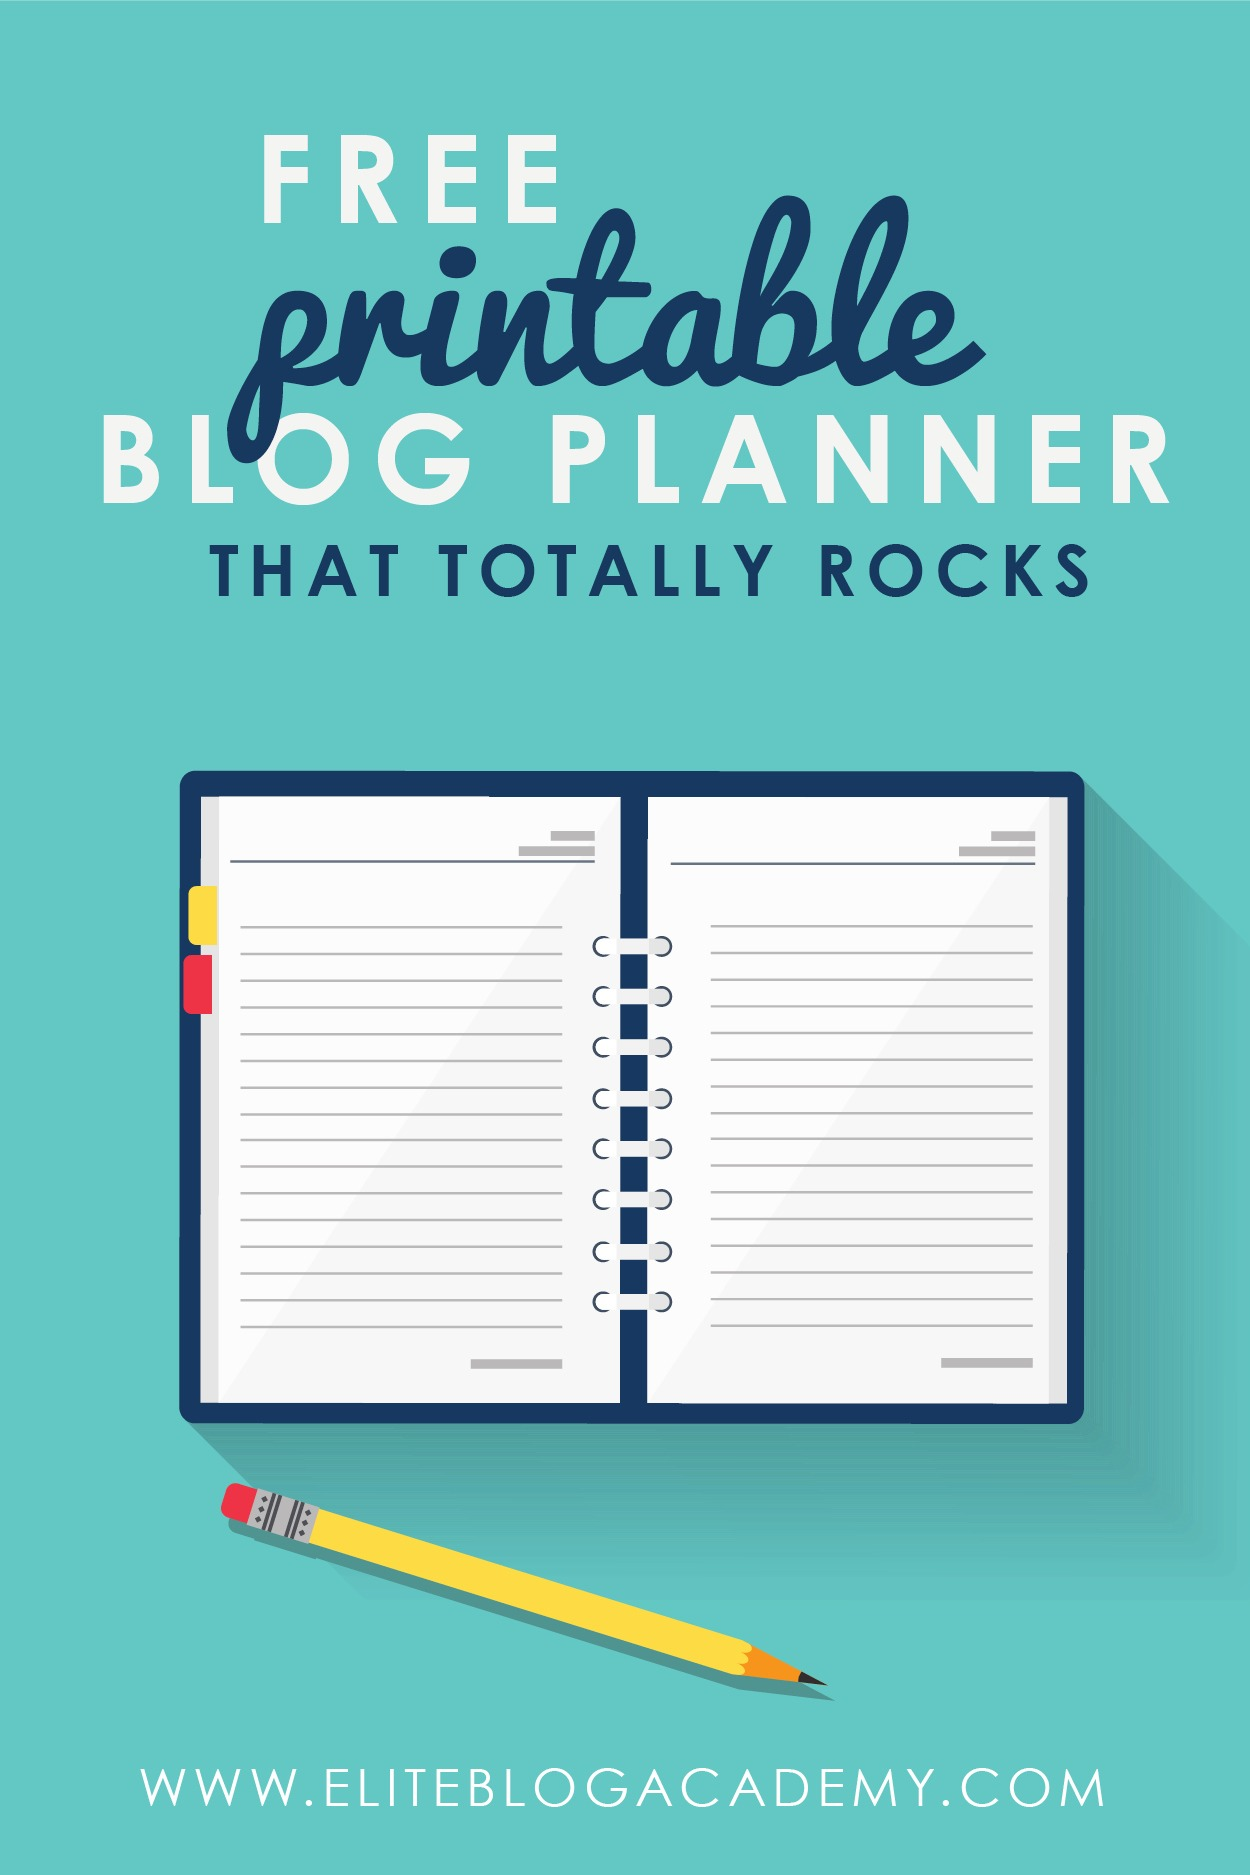 Got blogging overwhelm? A clear blog structure is CRITICAL to a blogger's success. Find out how to organize YOUR blog with this free blog planner from Elite Blog Academy so that your readers can always find exactly what they're looking for and become raving fans!